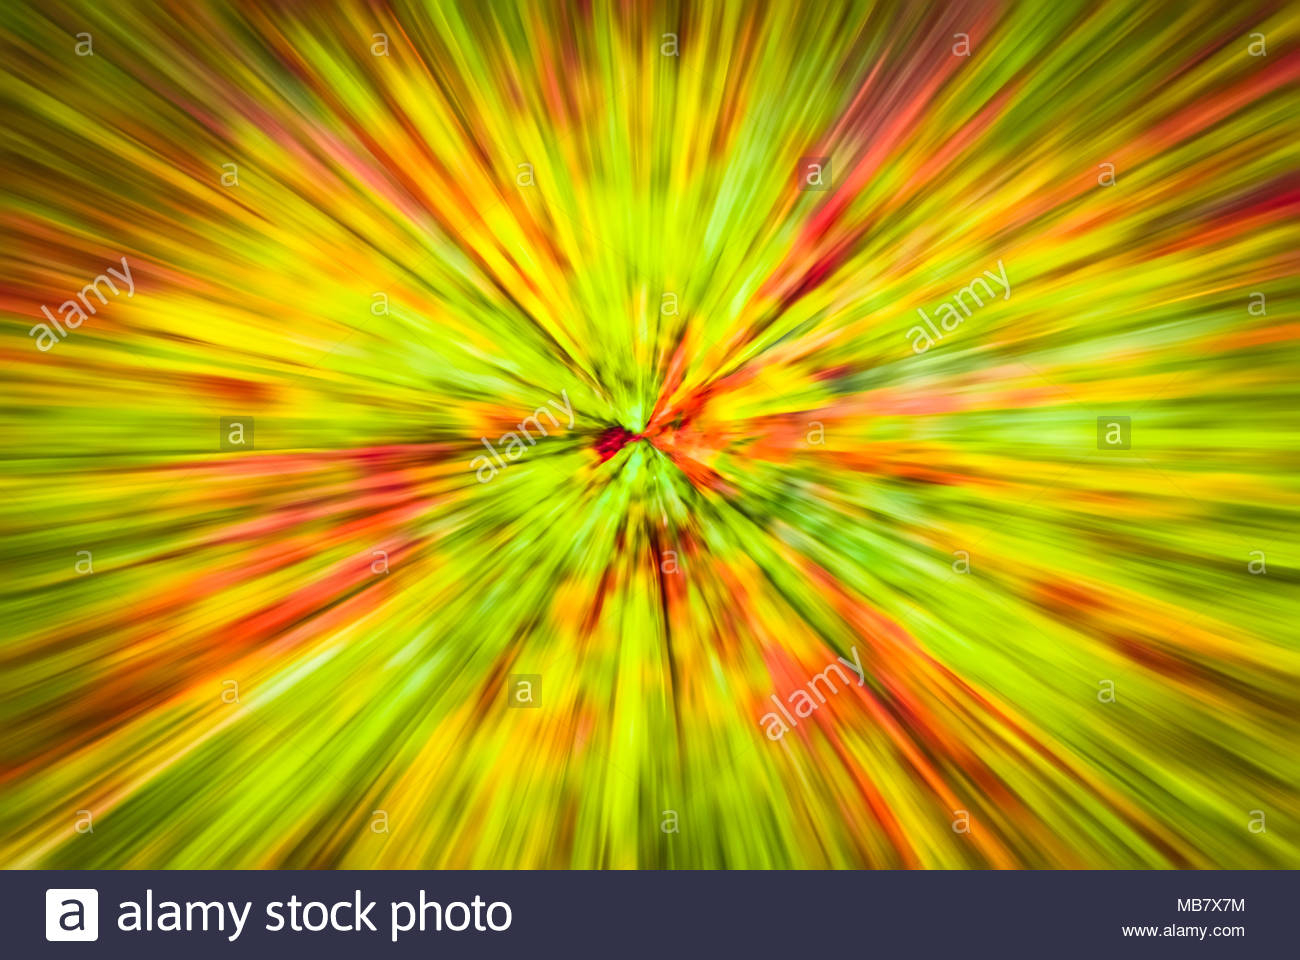 psychedelic hypnotic unrealistic abstract speedy pink greed background motion blur effect zoom motion blur MB7X7M